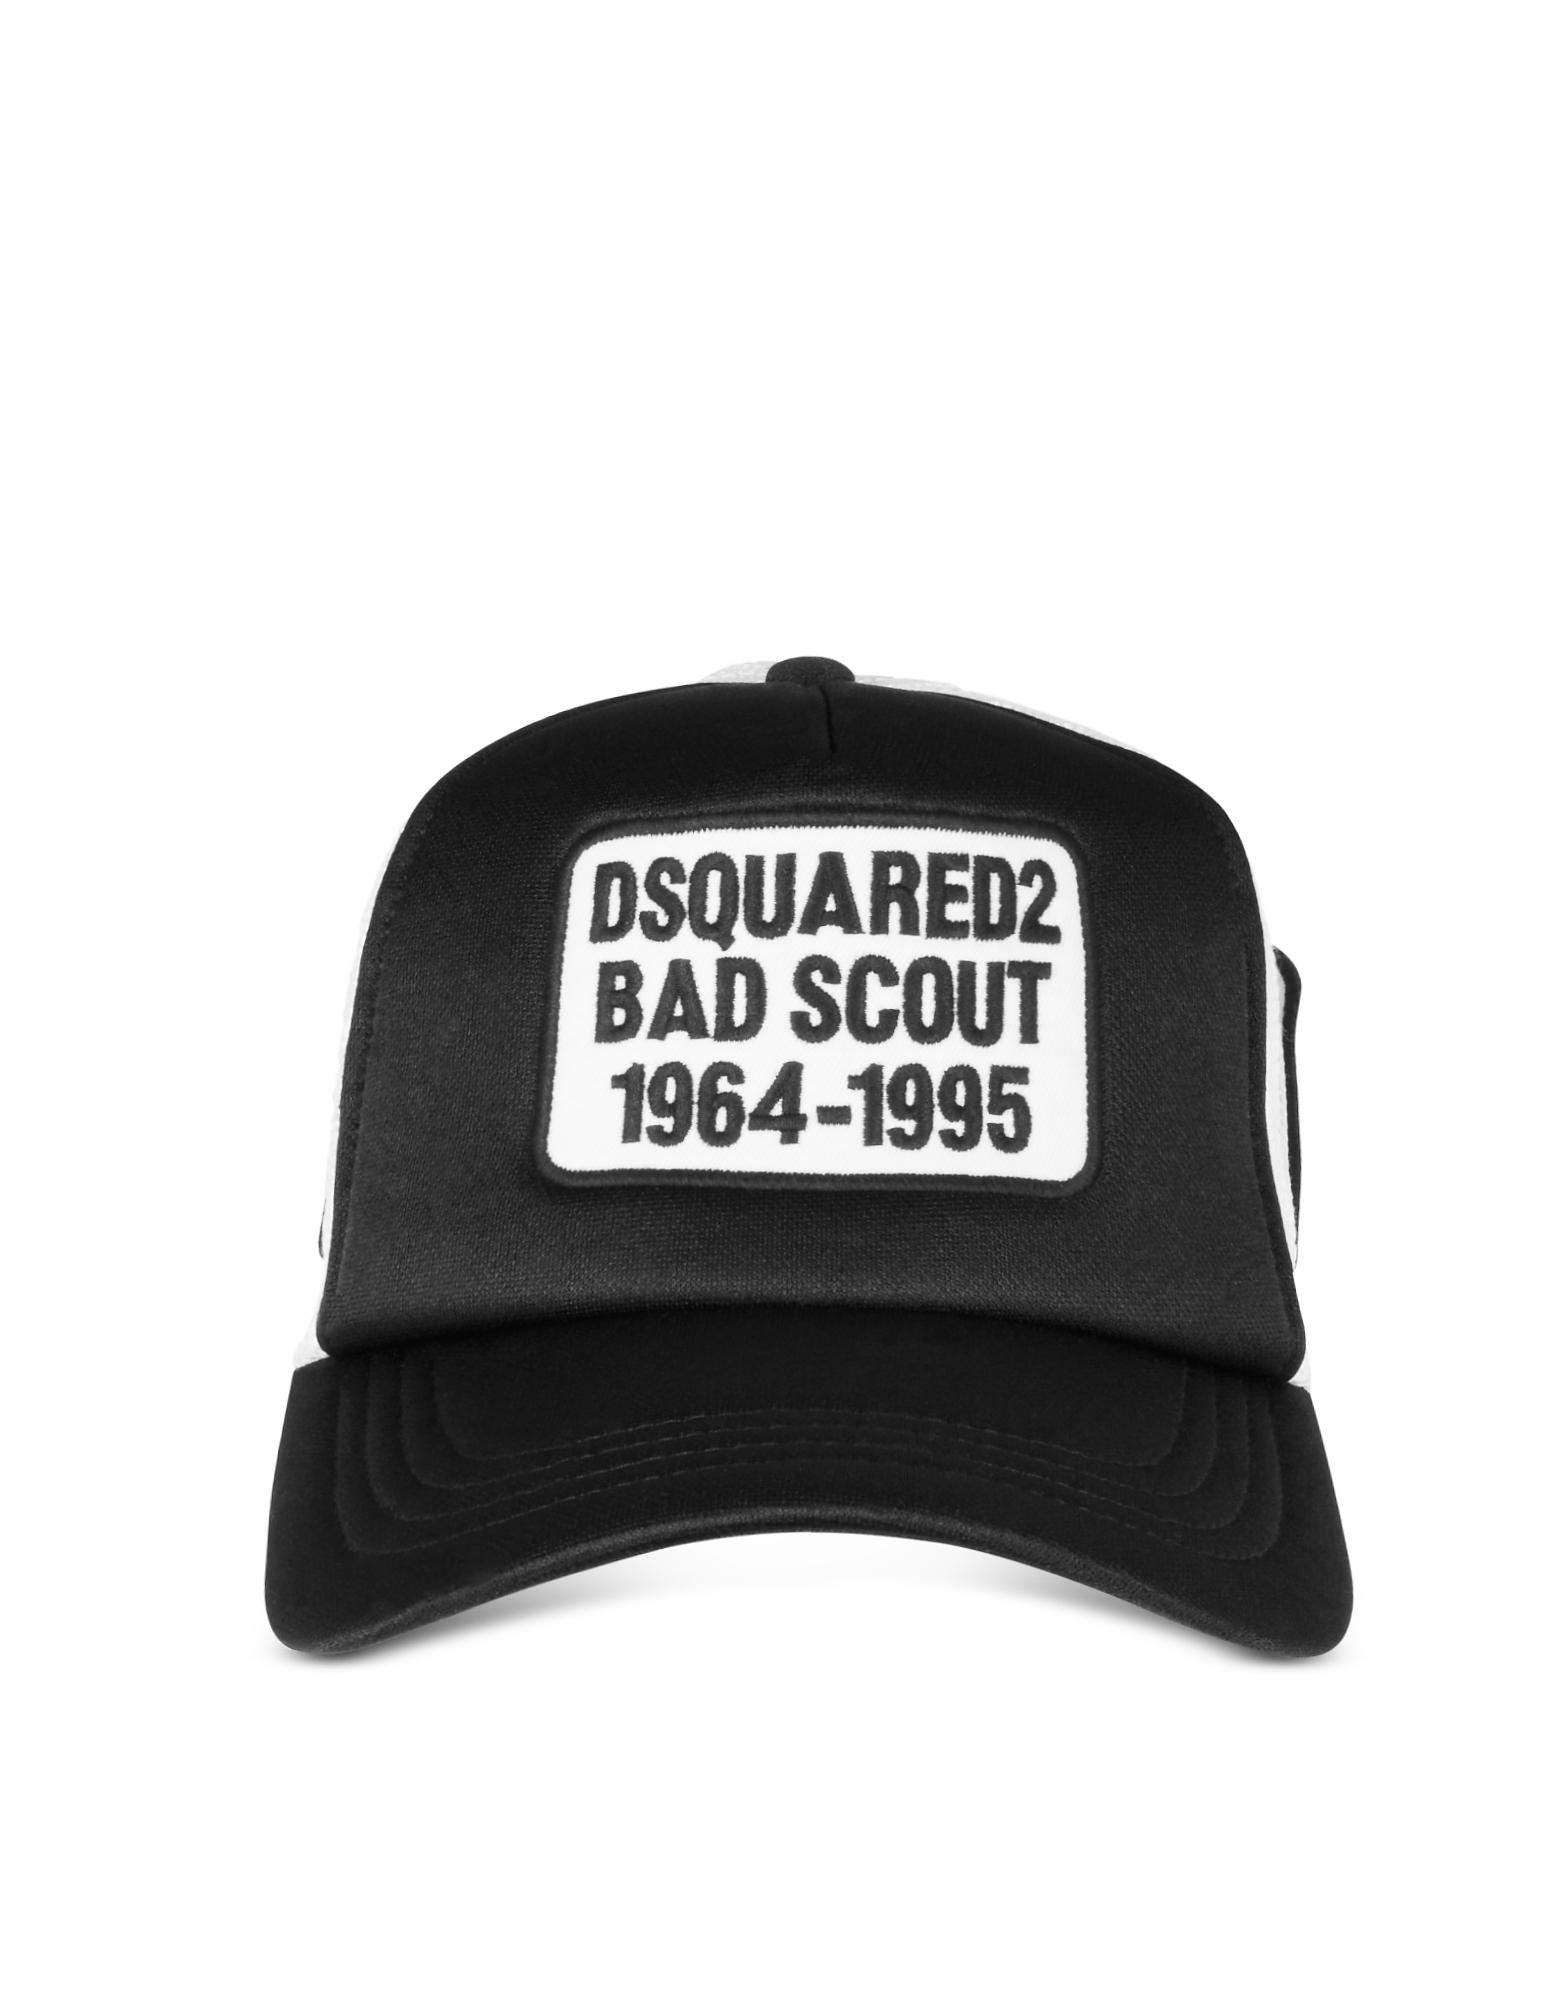 6af71bf416683e DSquared² Black And White Bad Scout Baseball Cap in Black for Men - Lyst